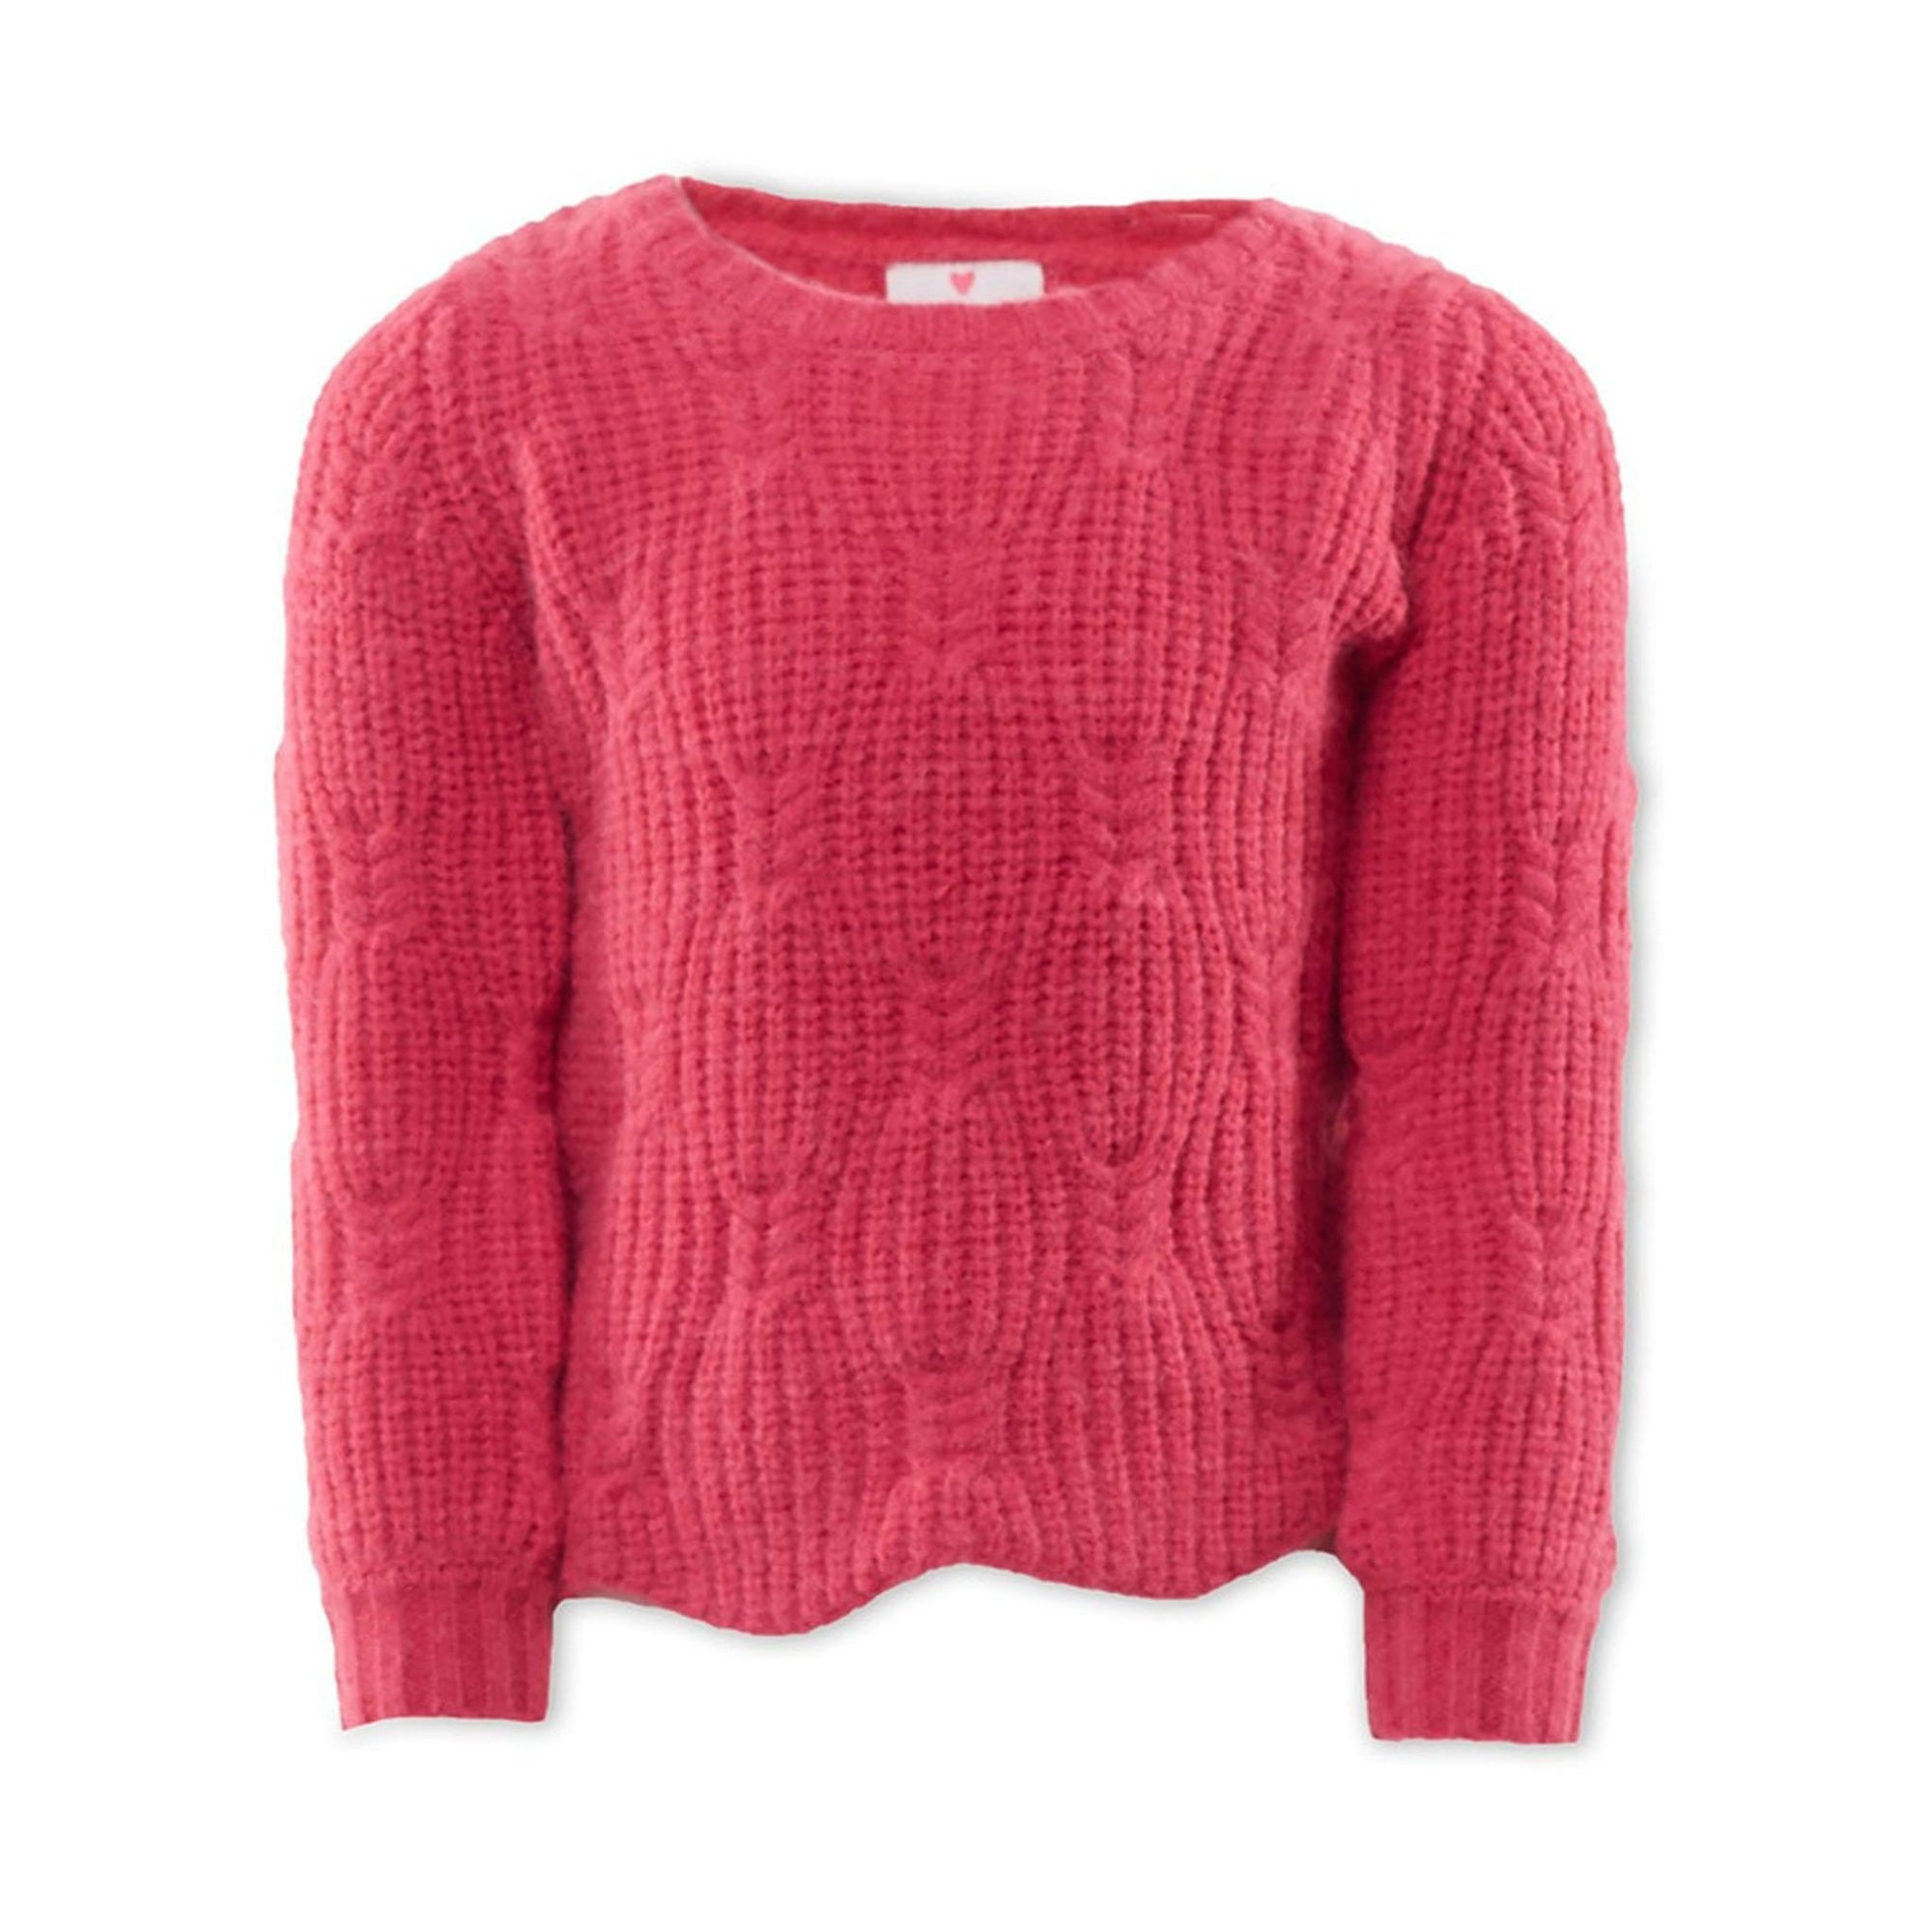 Eve's Sister Georgie Knit - Hot Pink